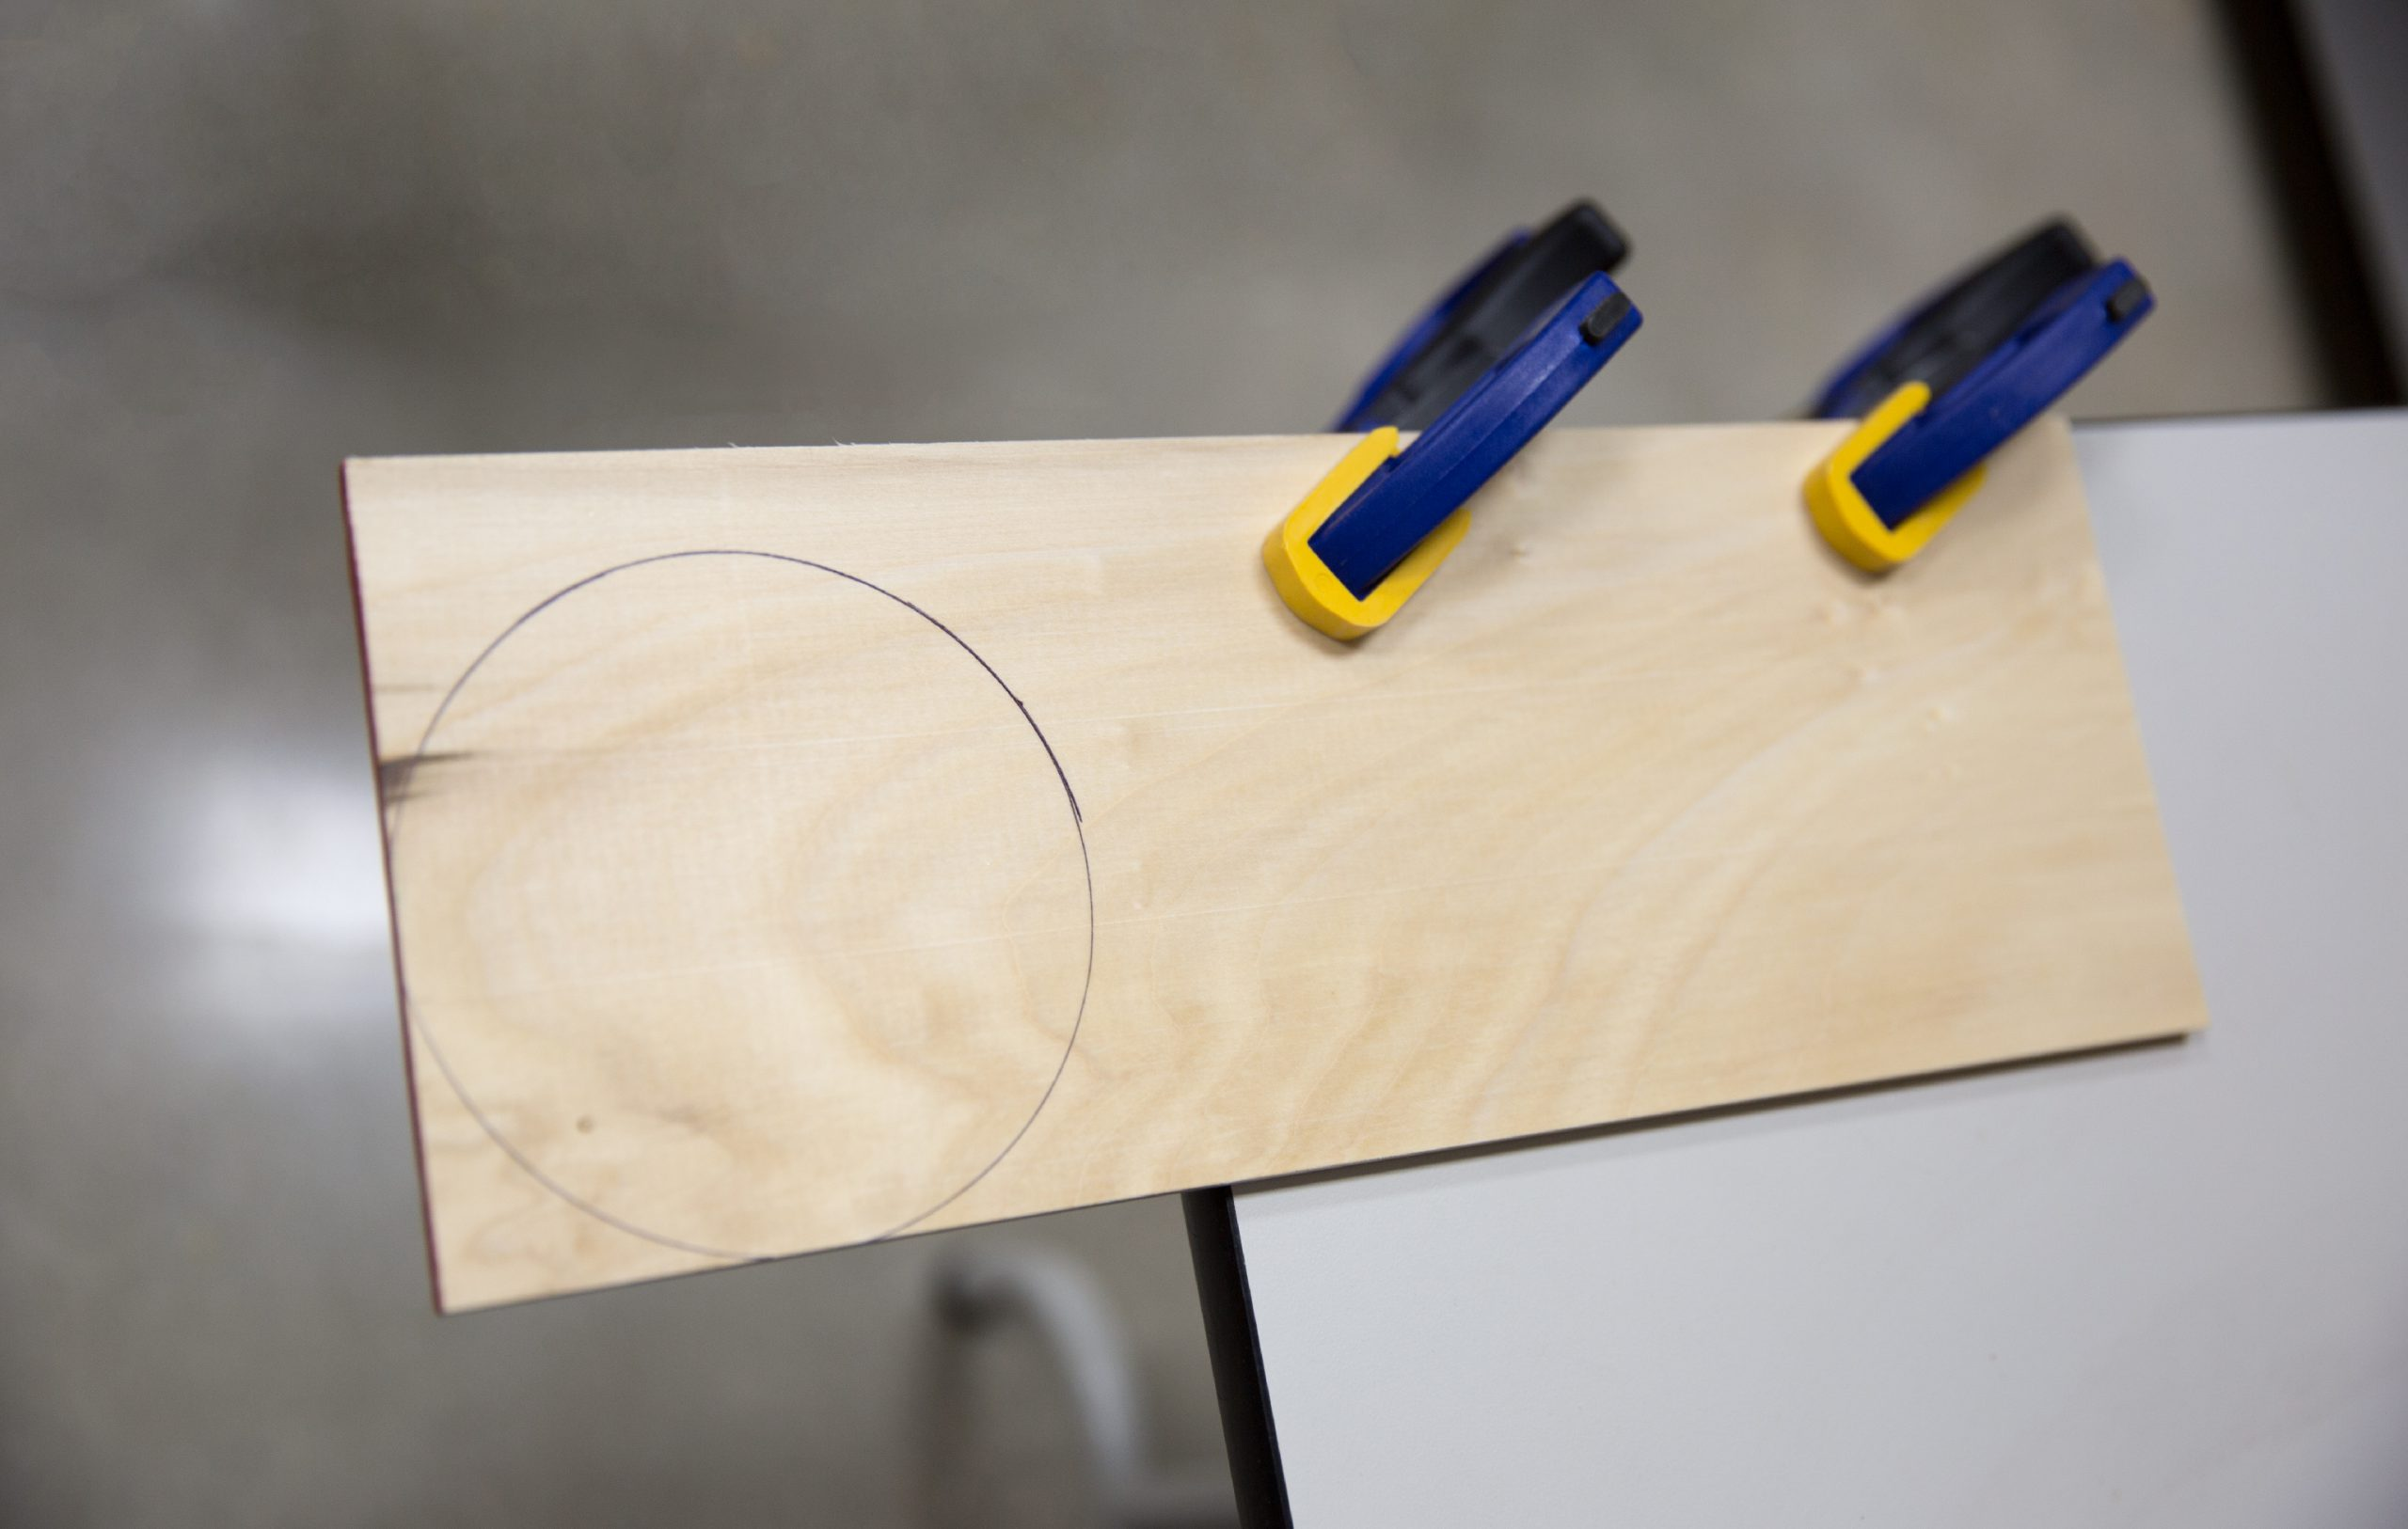 Circle drawn on a piece of wood